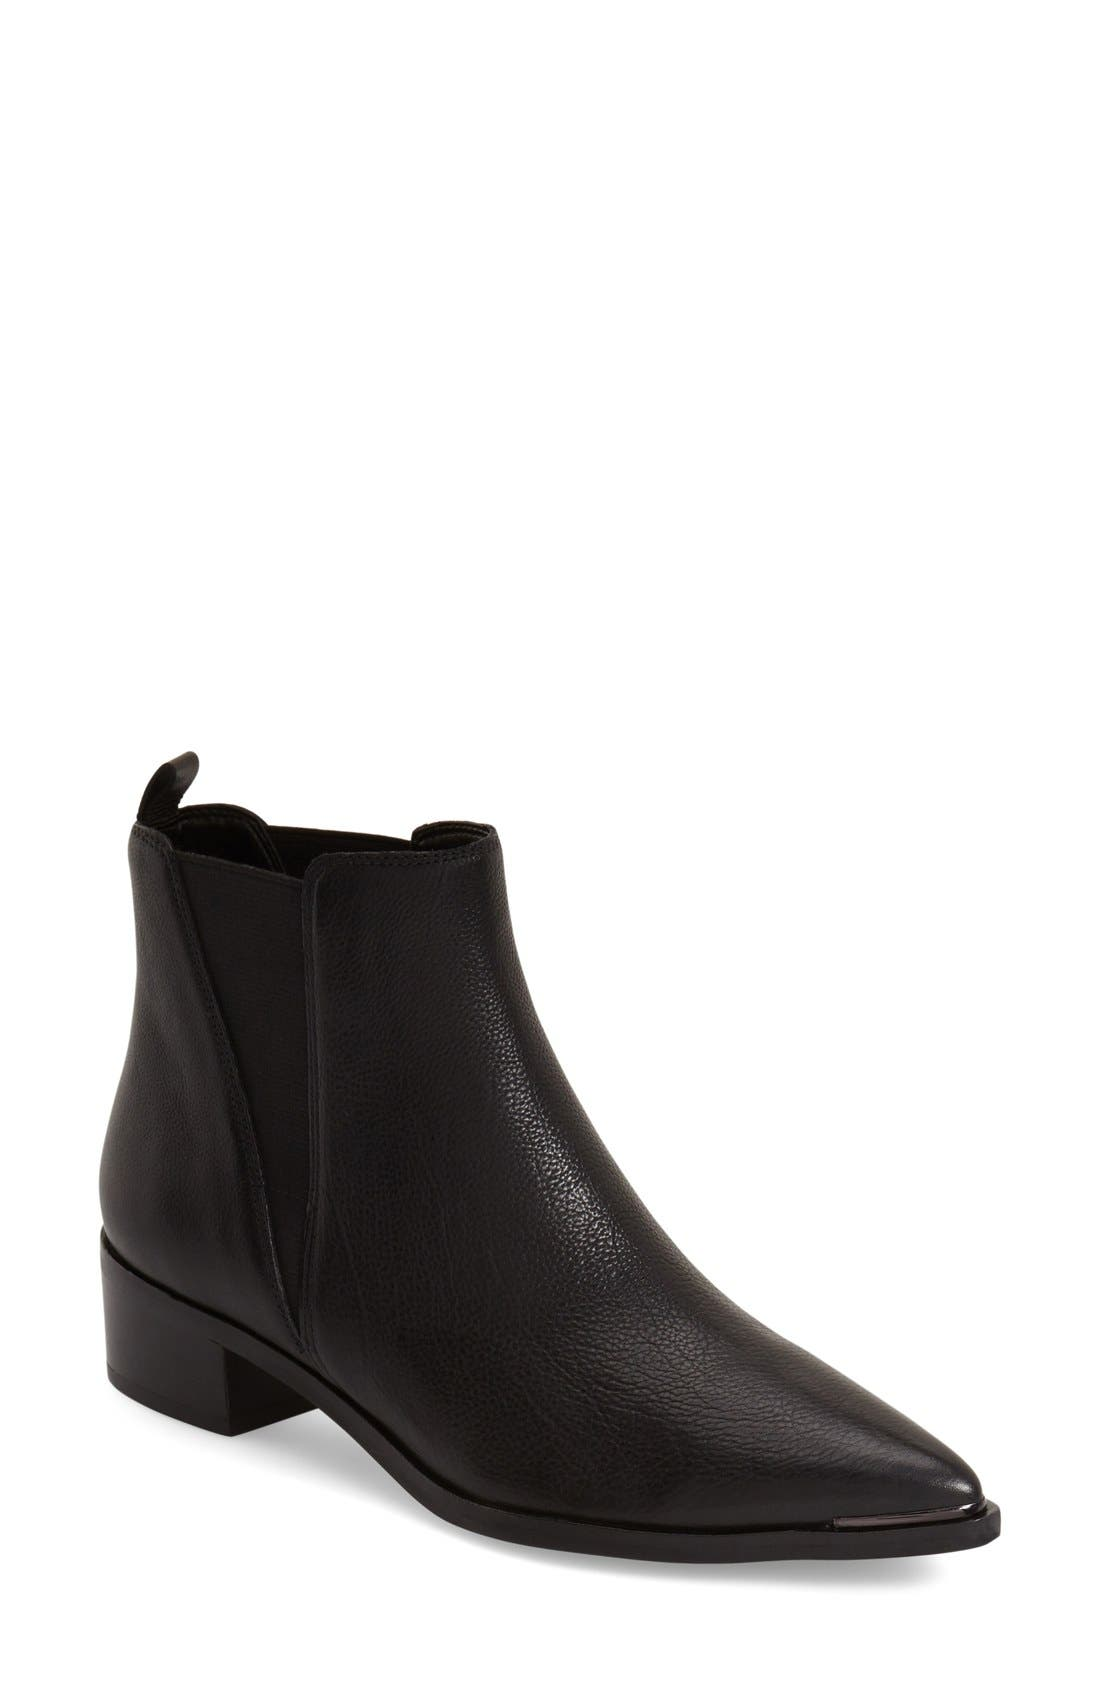 Alternate Image 1 Selected - Marc Fisher LTD 'Yale' Chelsea Boot (Women)